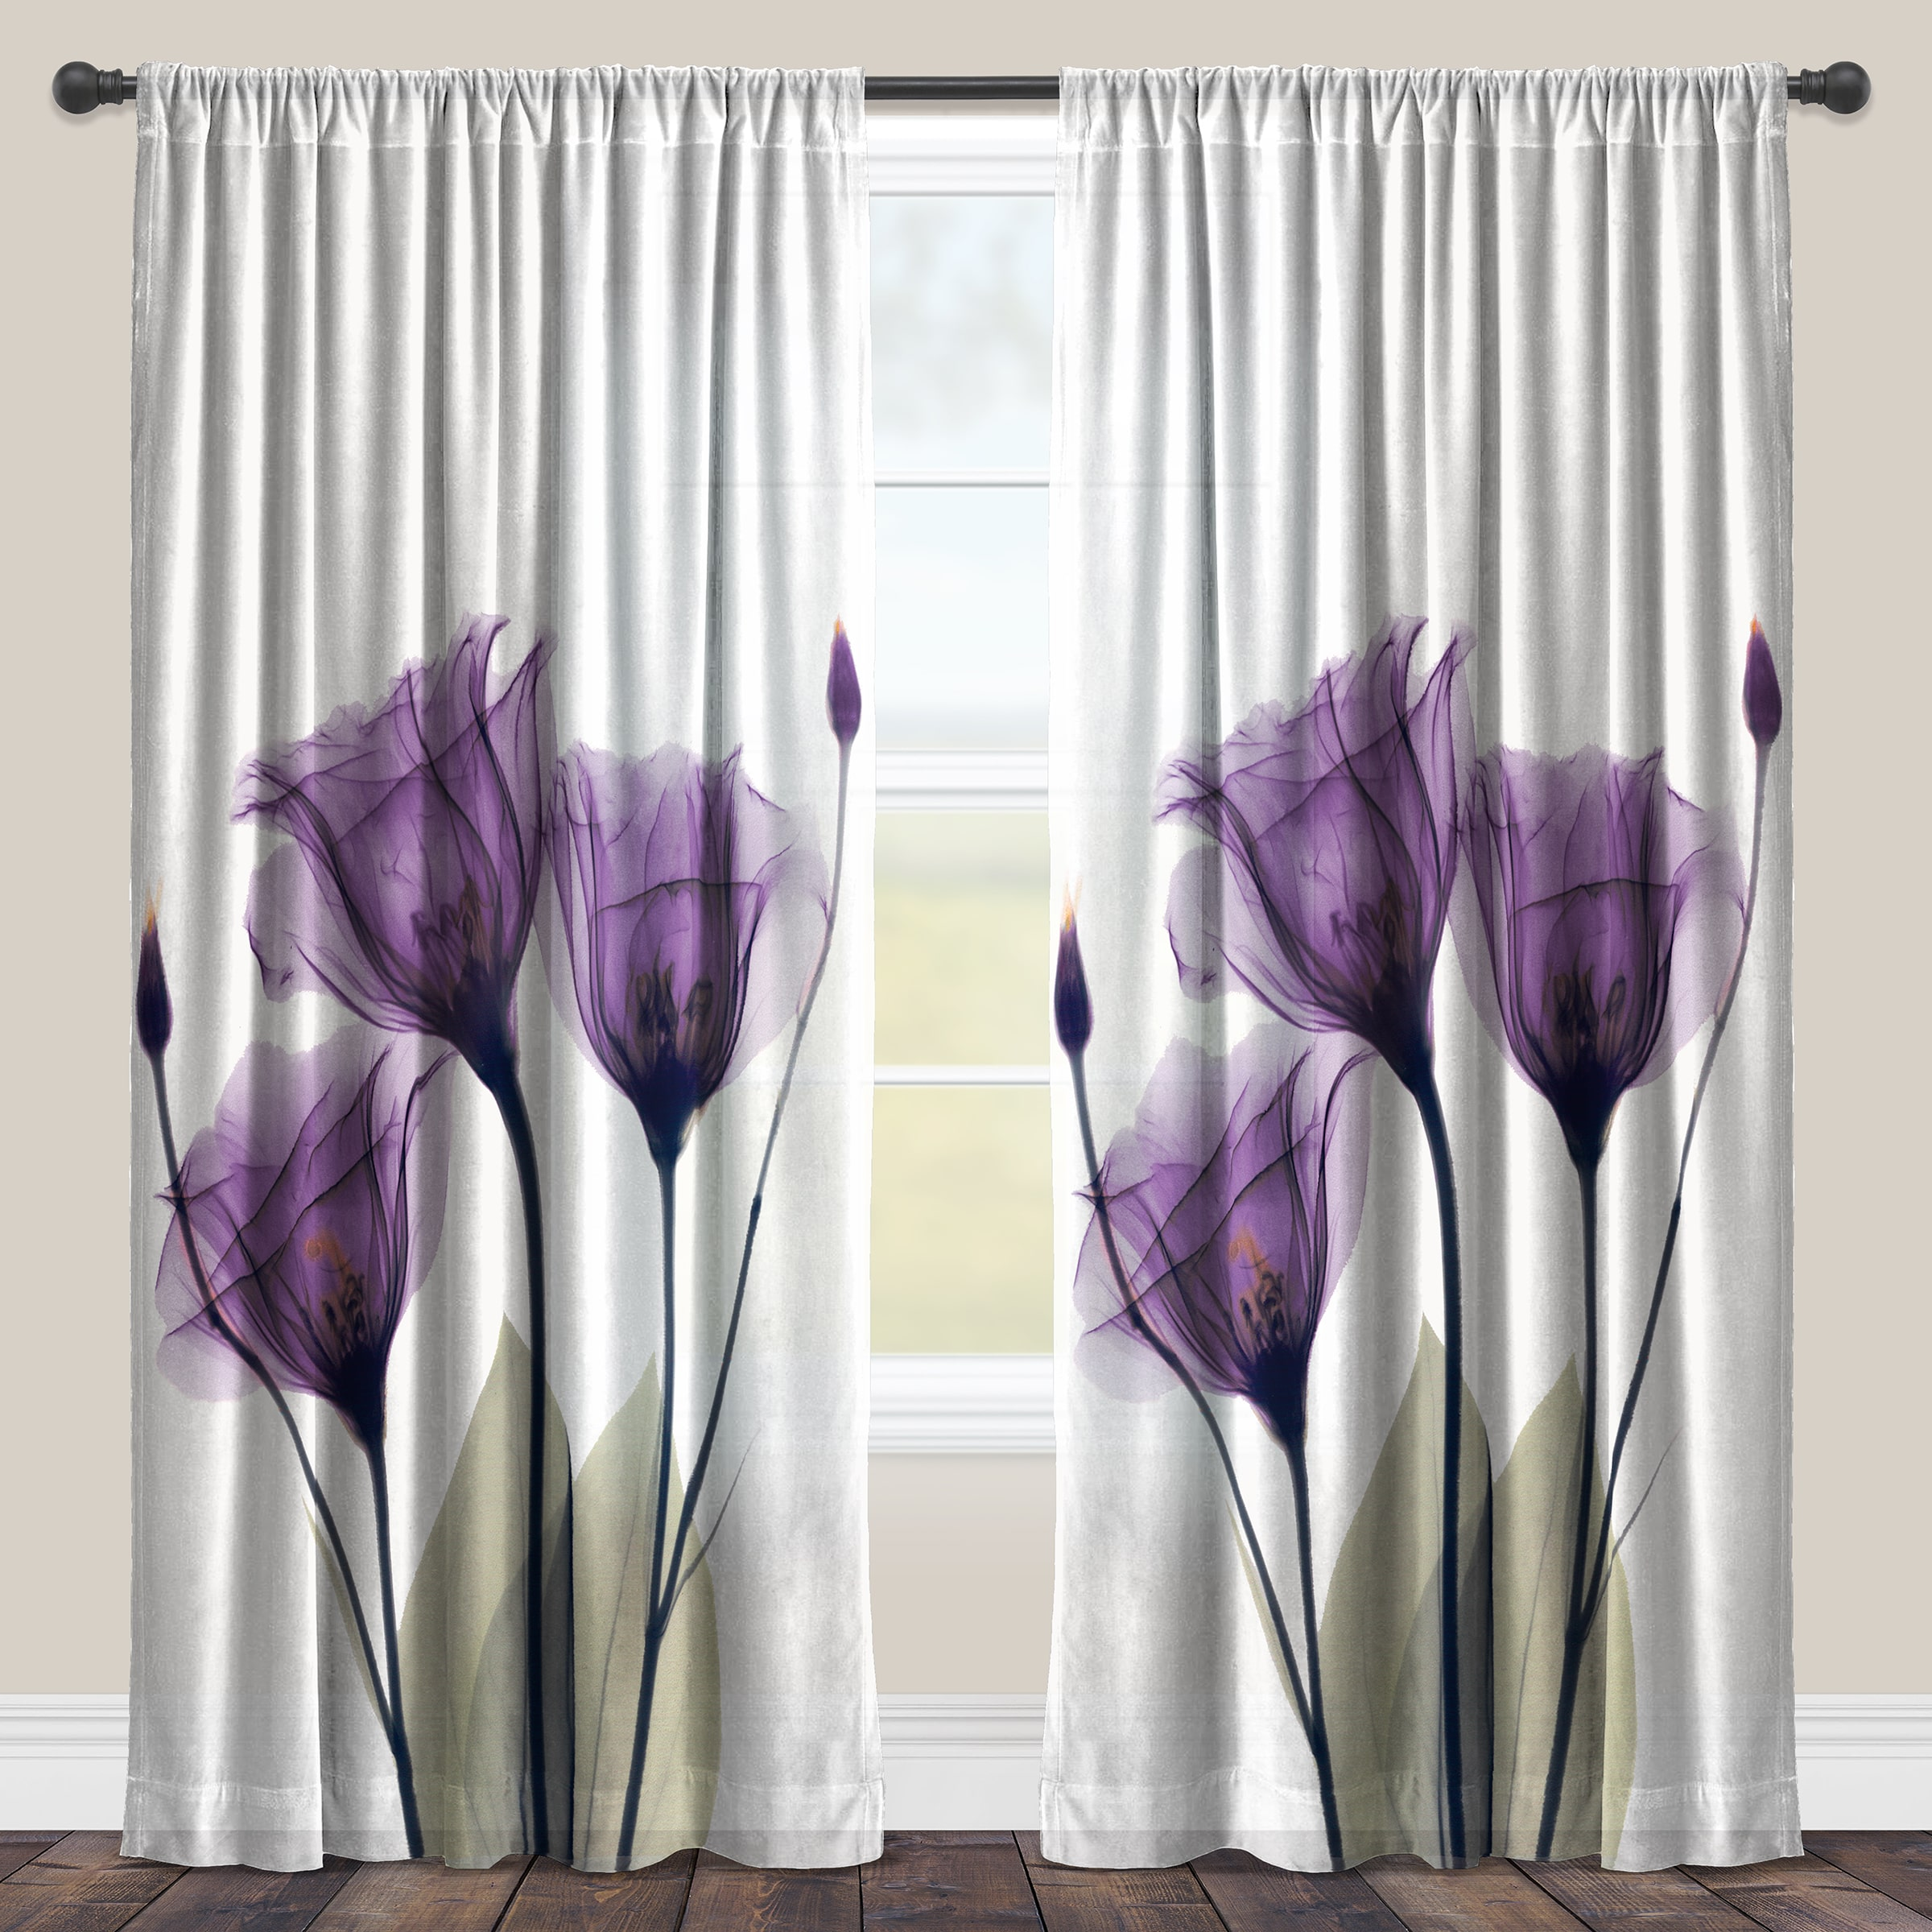 Lavender Sheer Curtains Laural Home Lavender Floral X Ray Sheer Curtain Panel Single Panel